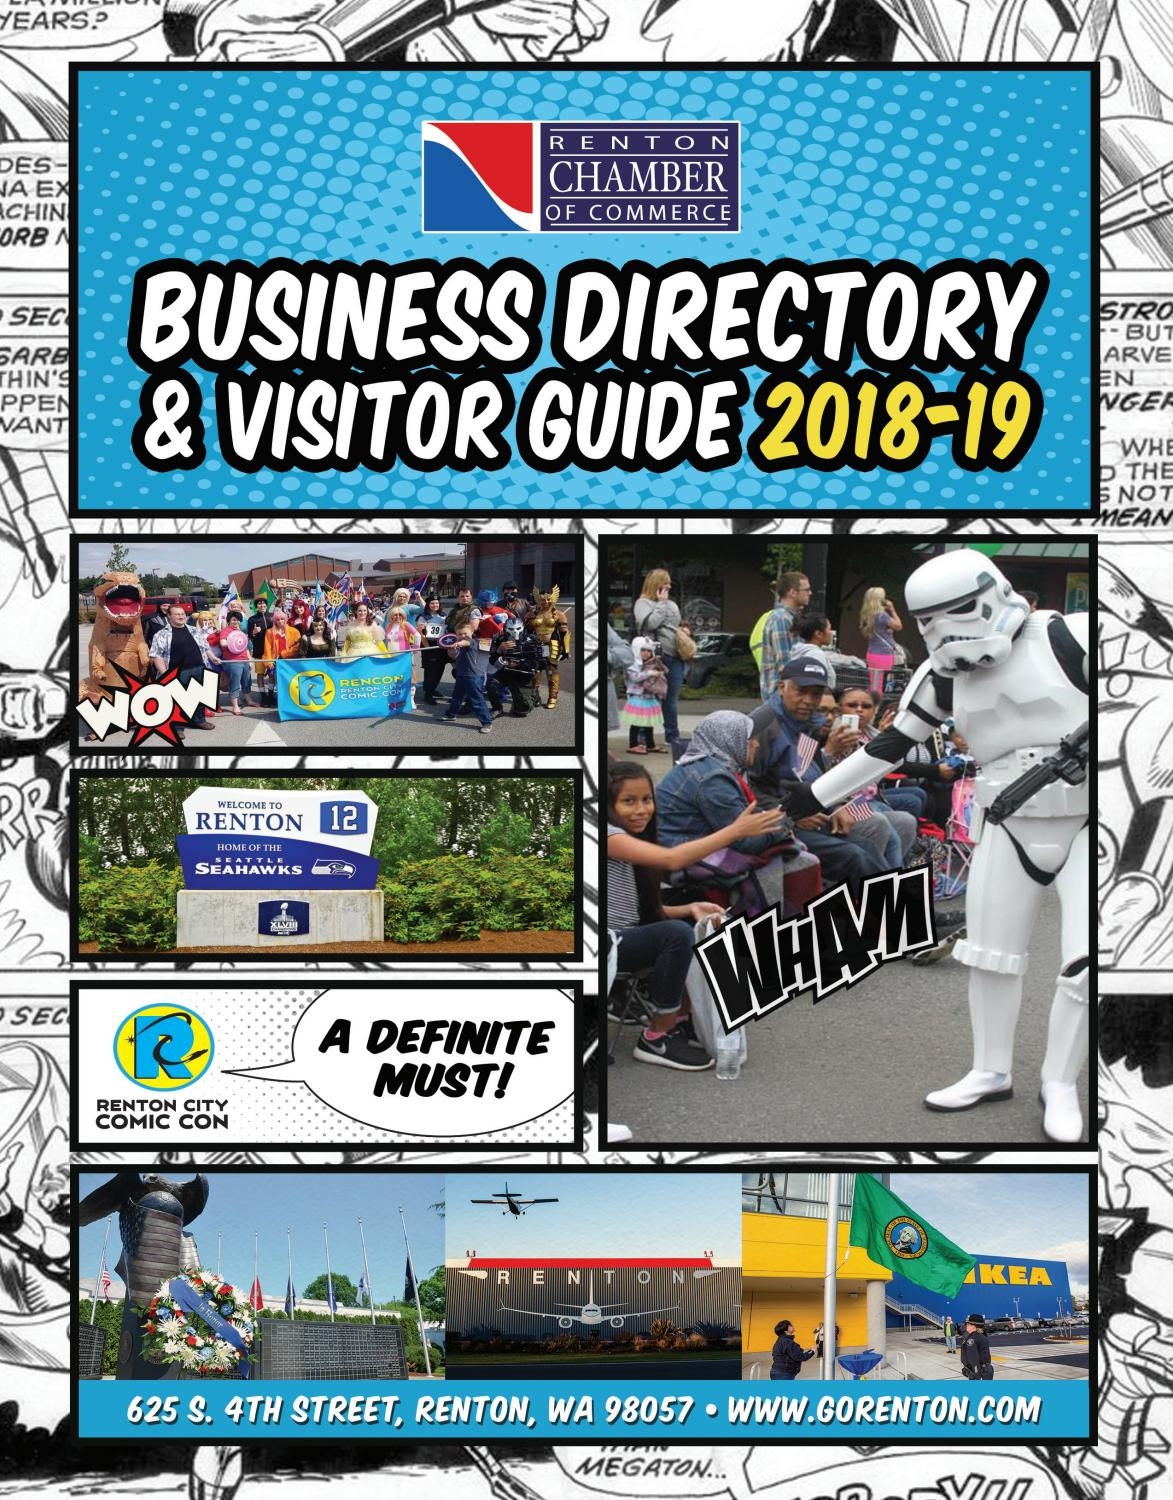 renton wa business directory 2018 2019 by town square publications llc issuu renton wa business directory 2018 2019